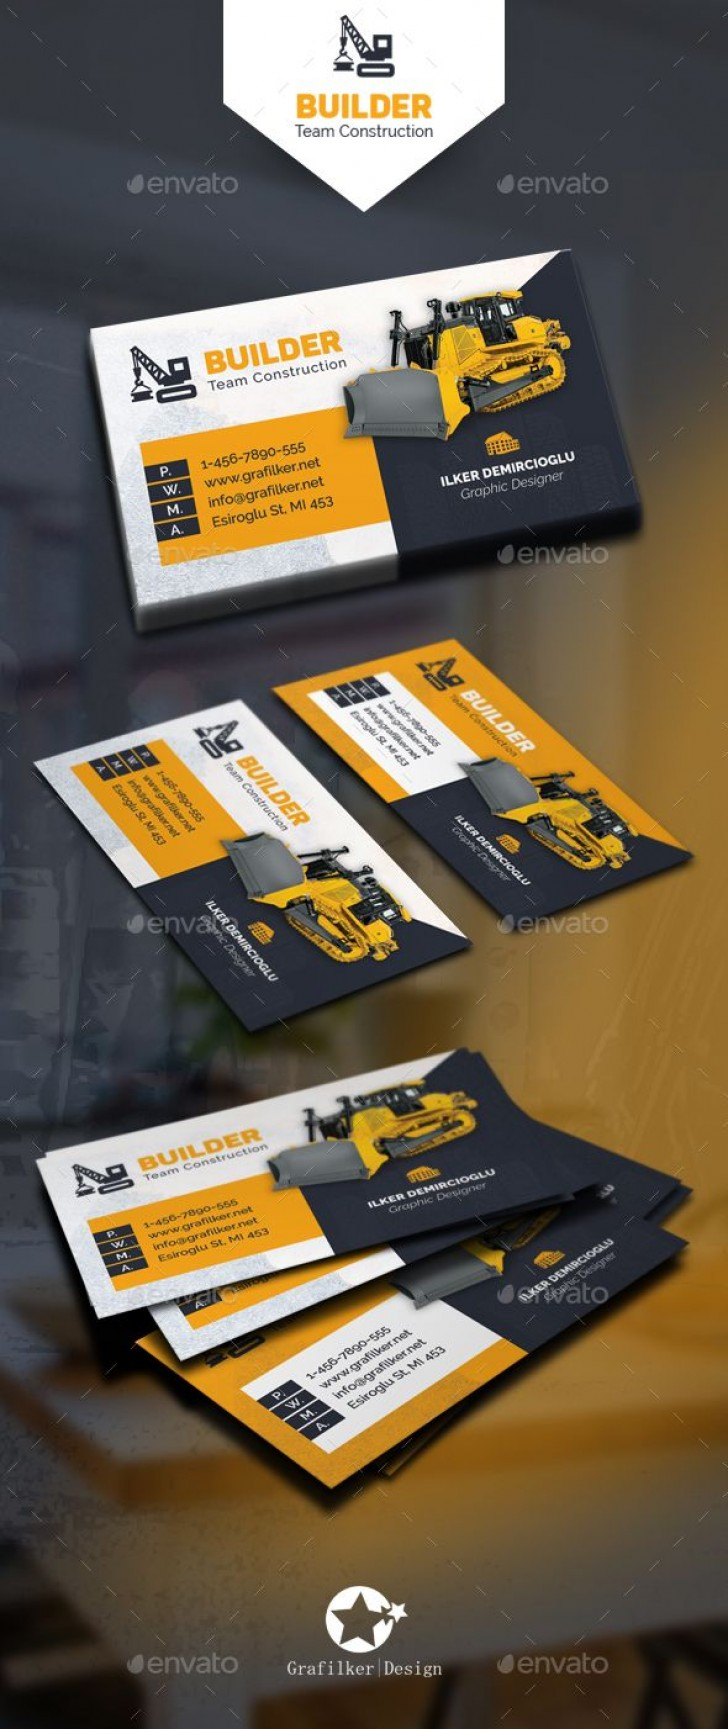 000 Magnificent Construction Busines Card Template Picture  Company Visiting Format Word For Material728